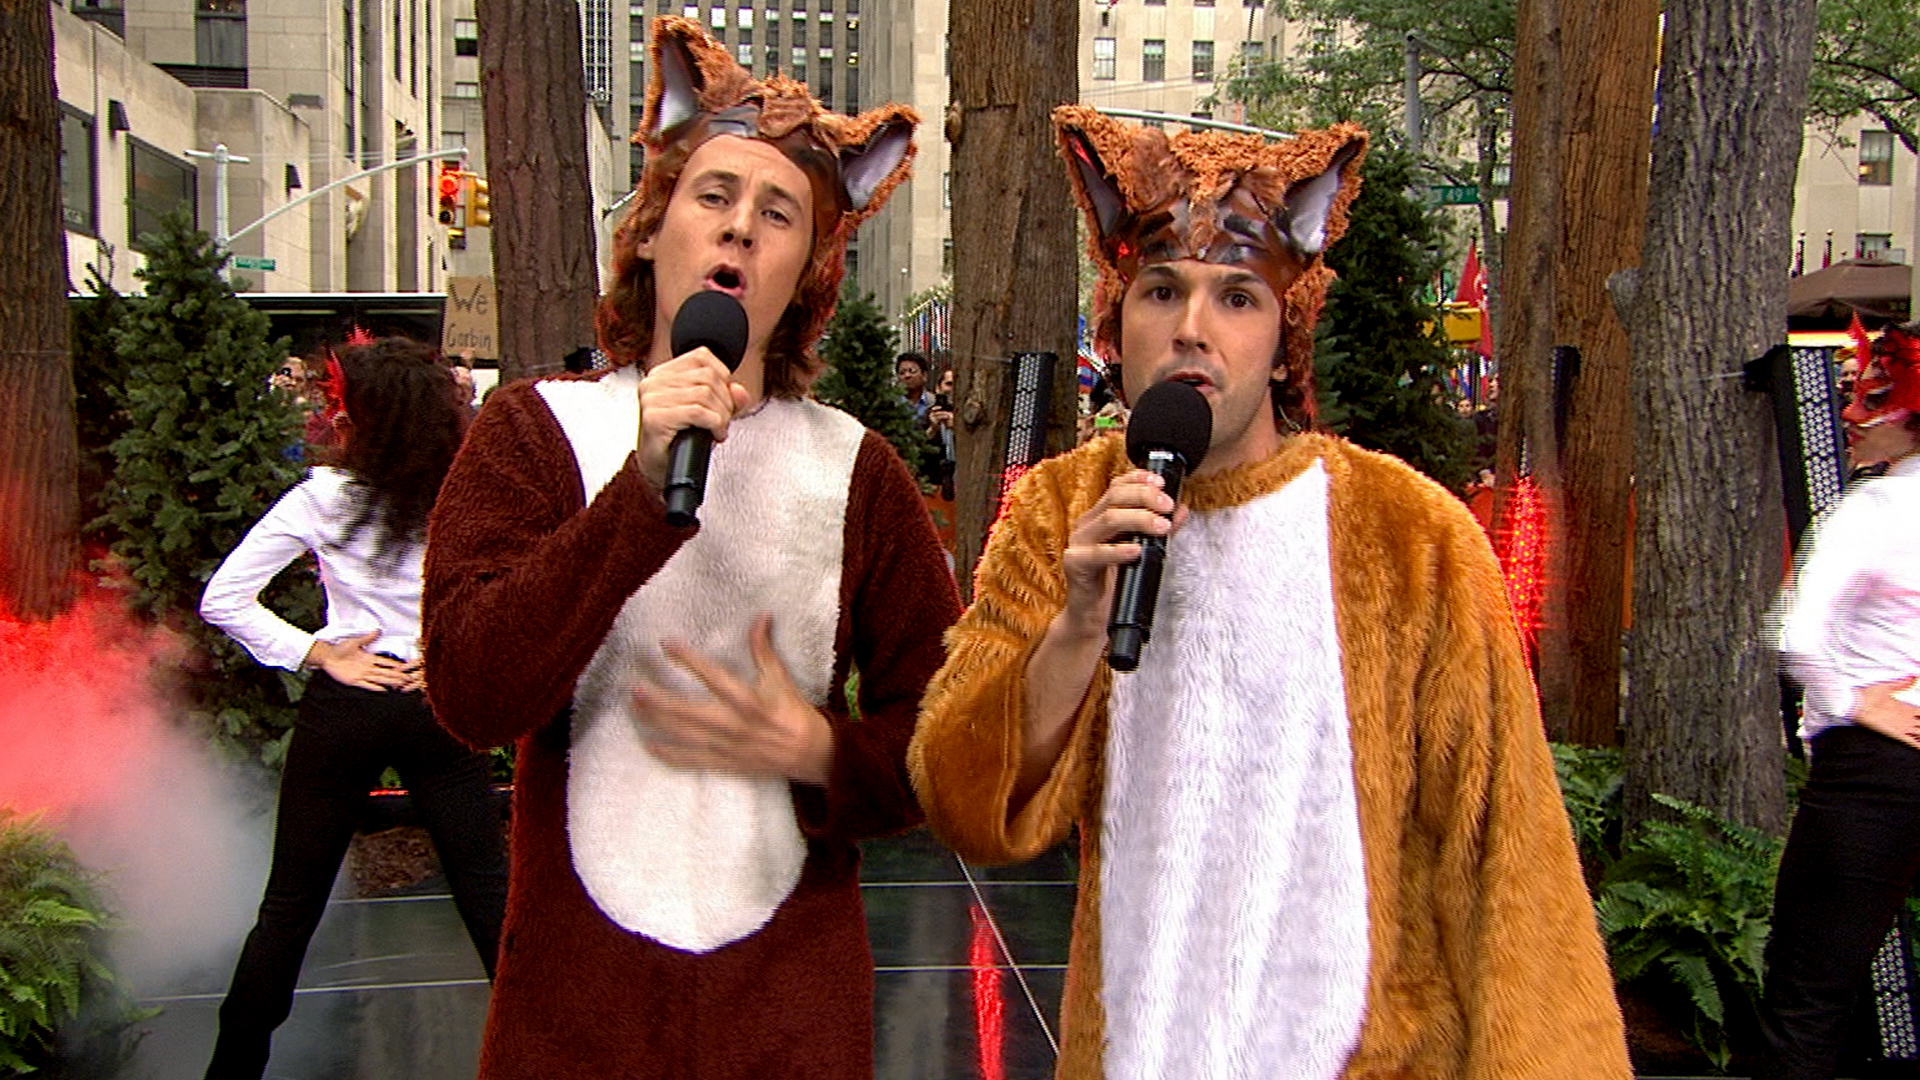 What Does The Fox Say Lyrics Meaning